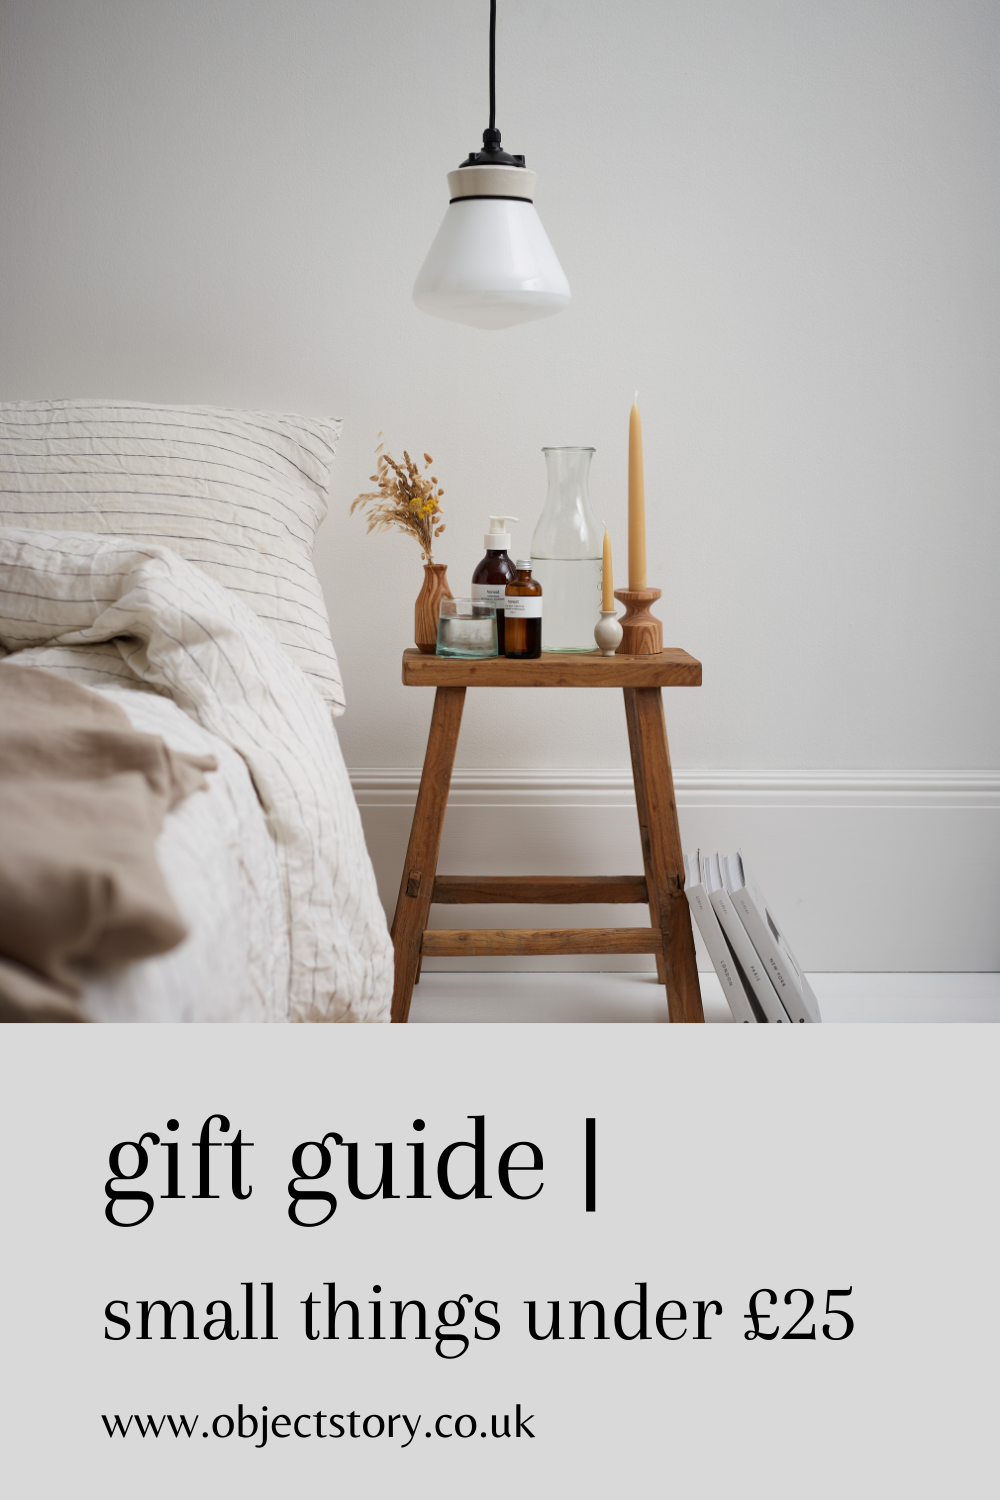 object story independent store gift guide 2020 - small things under £25